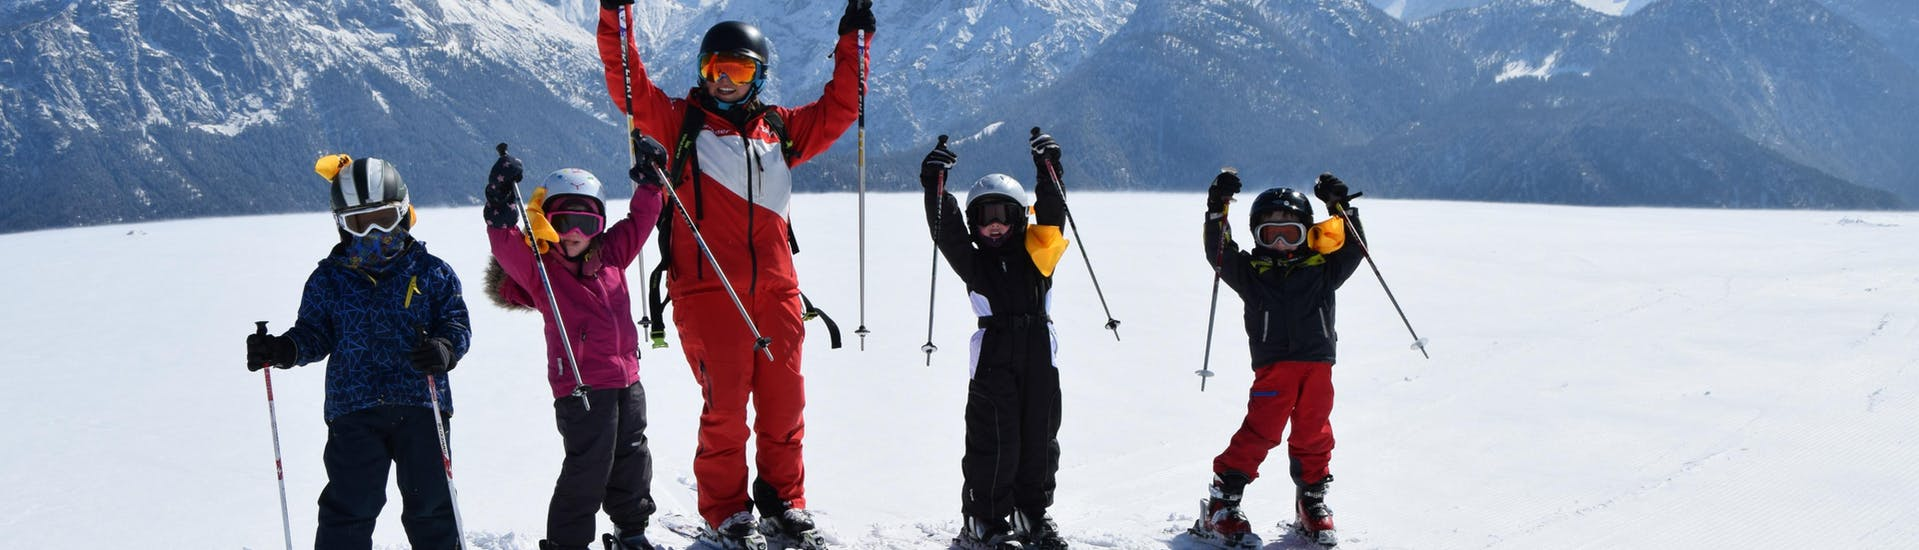 Teen Ski Lessons (11-15 y.) for Advanced Skiers with HERBST Skischule Lofer - Hero image